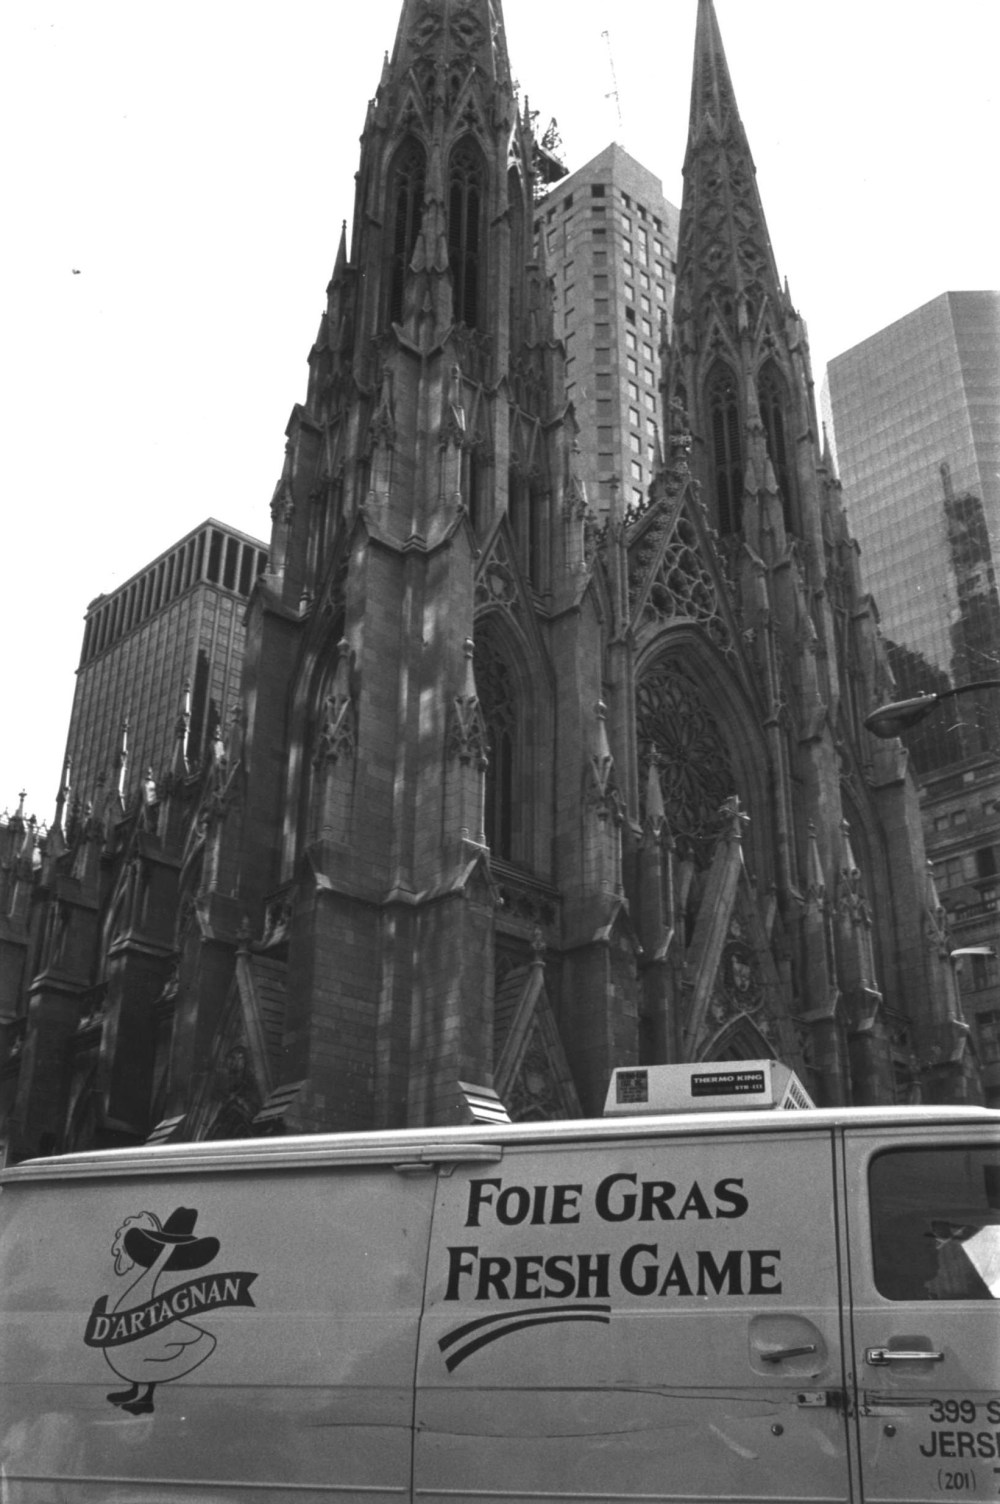 D'Artagnan van at St Patrick's Cathedral NYC late 1980s